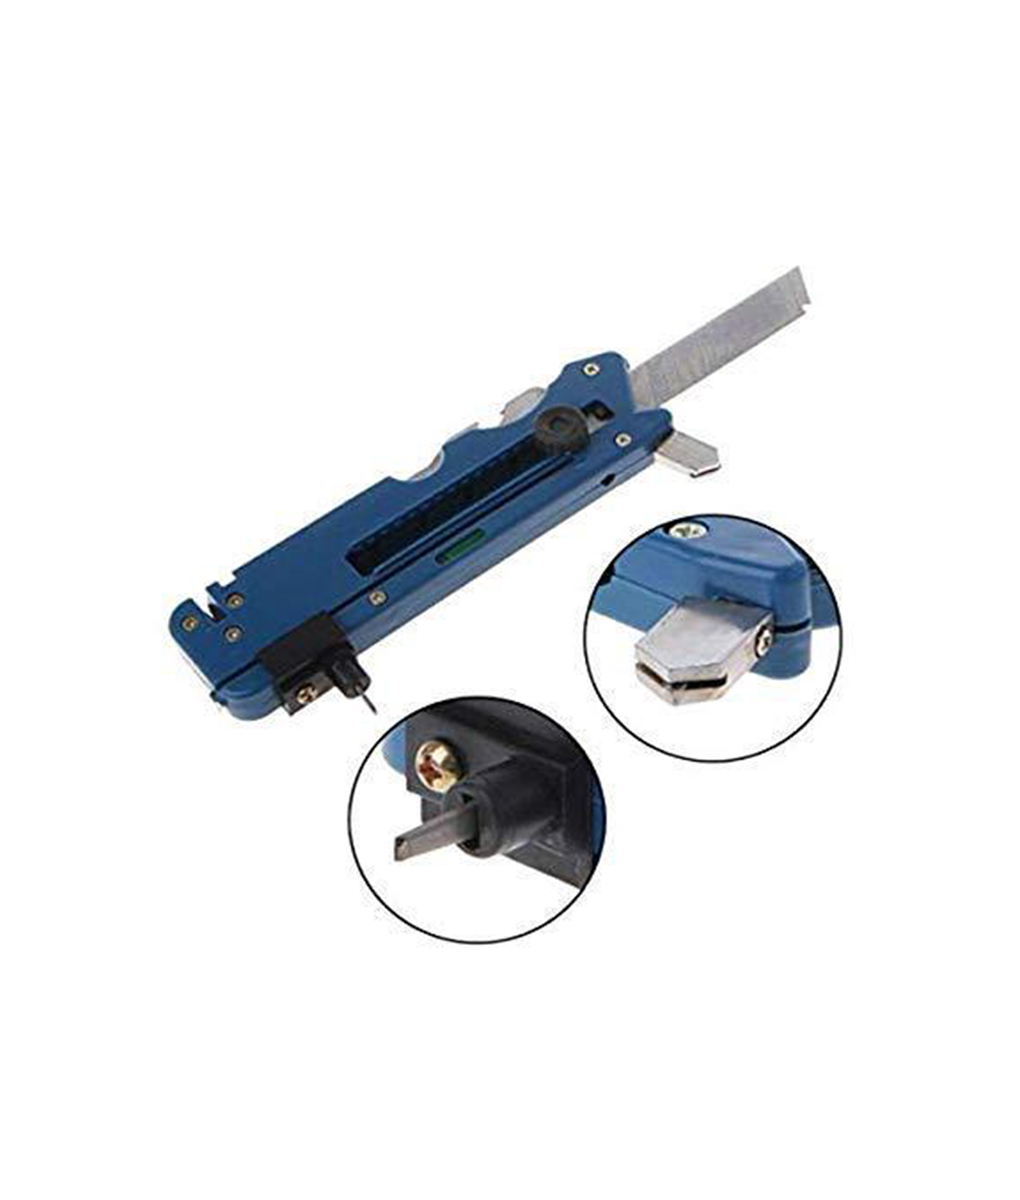 Multifunction Glass /& Tile Cutter Free /& Fast Shipping